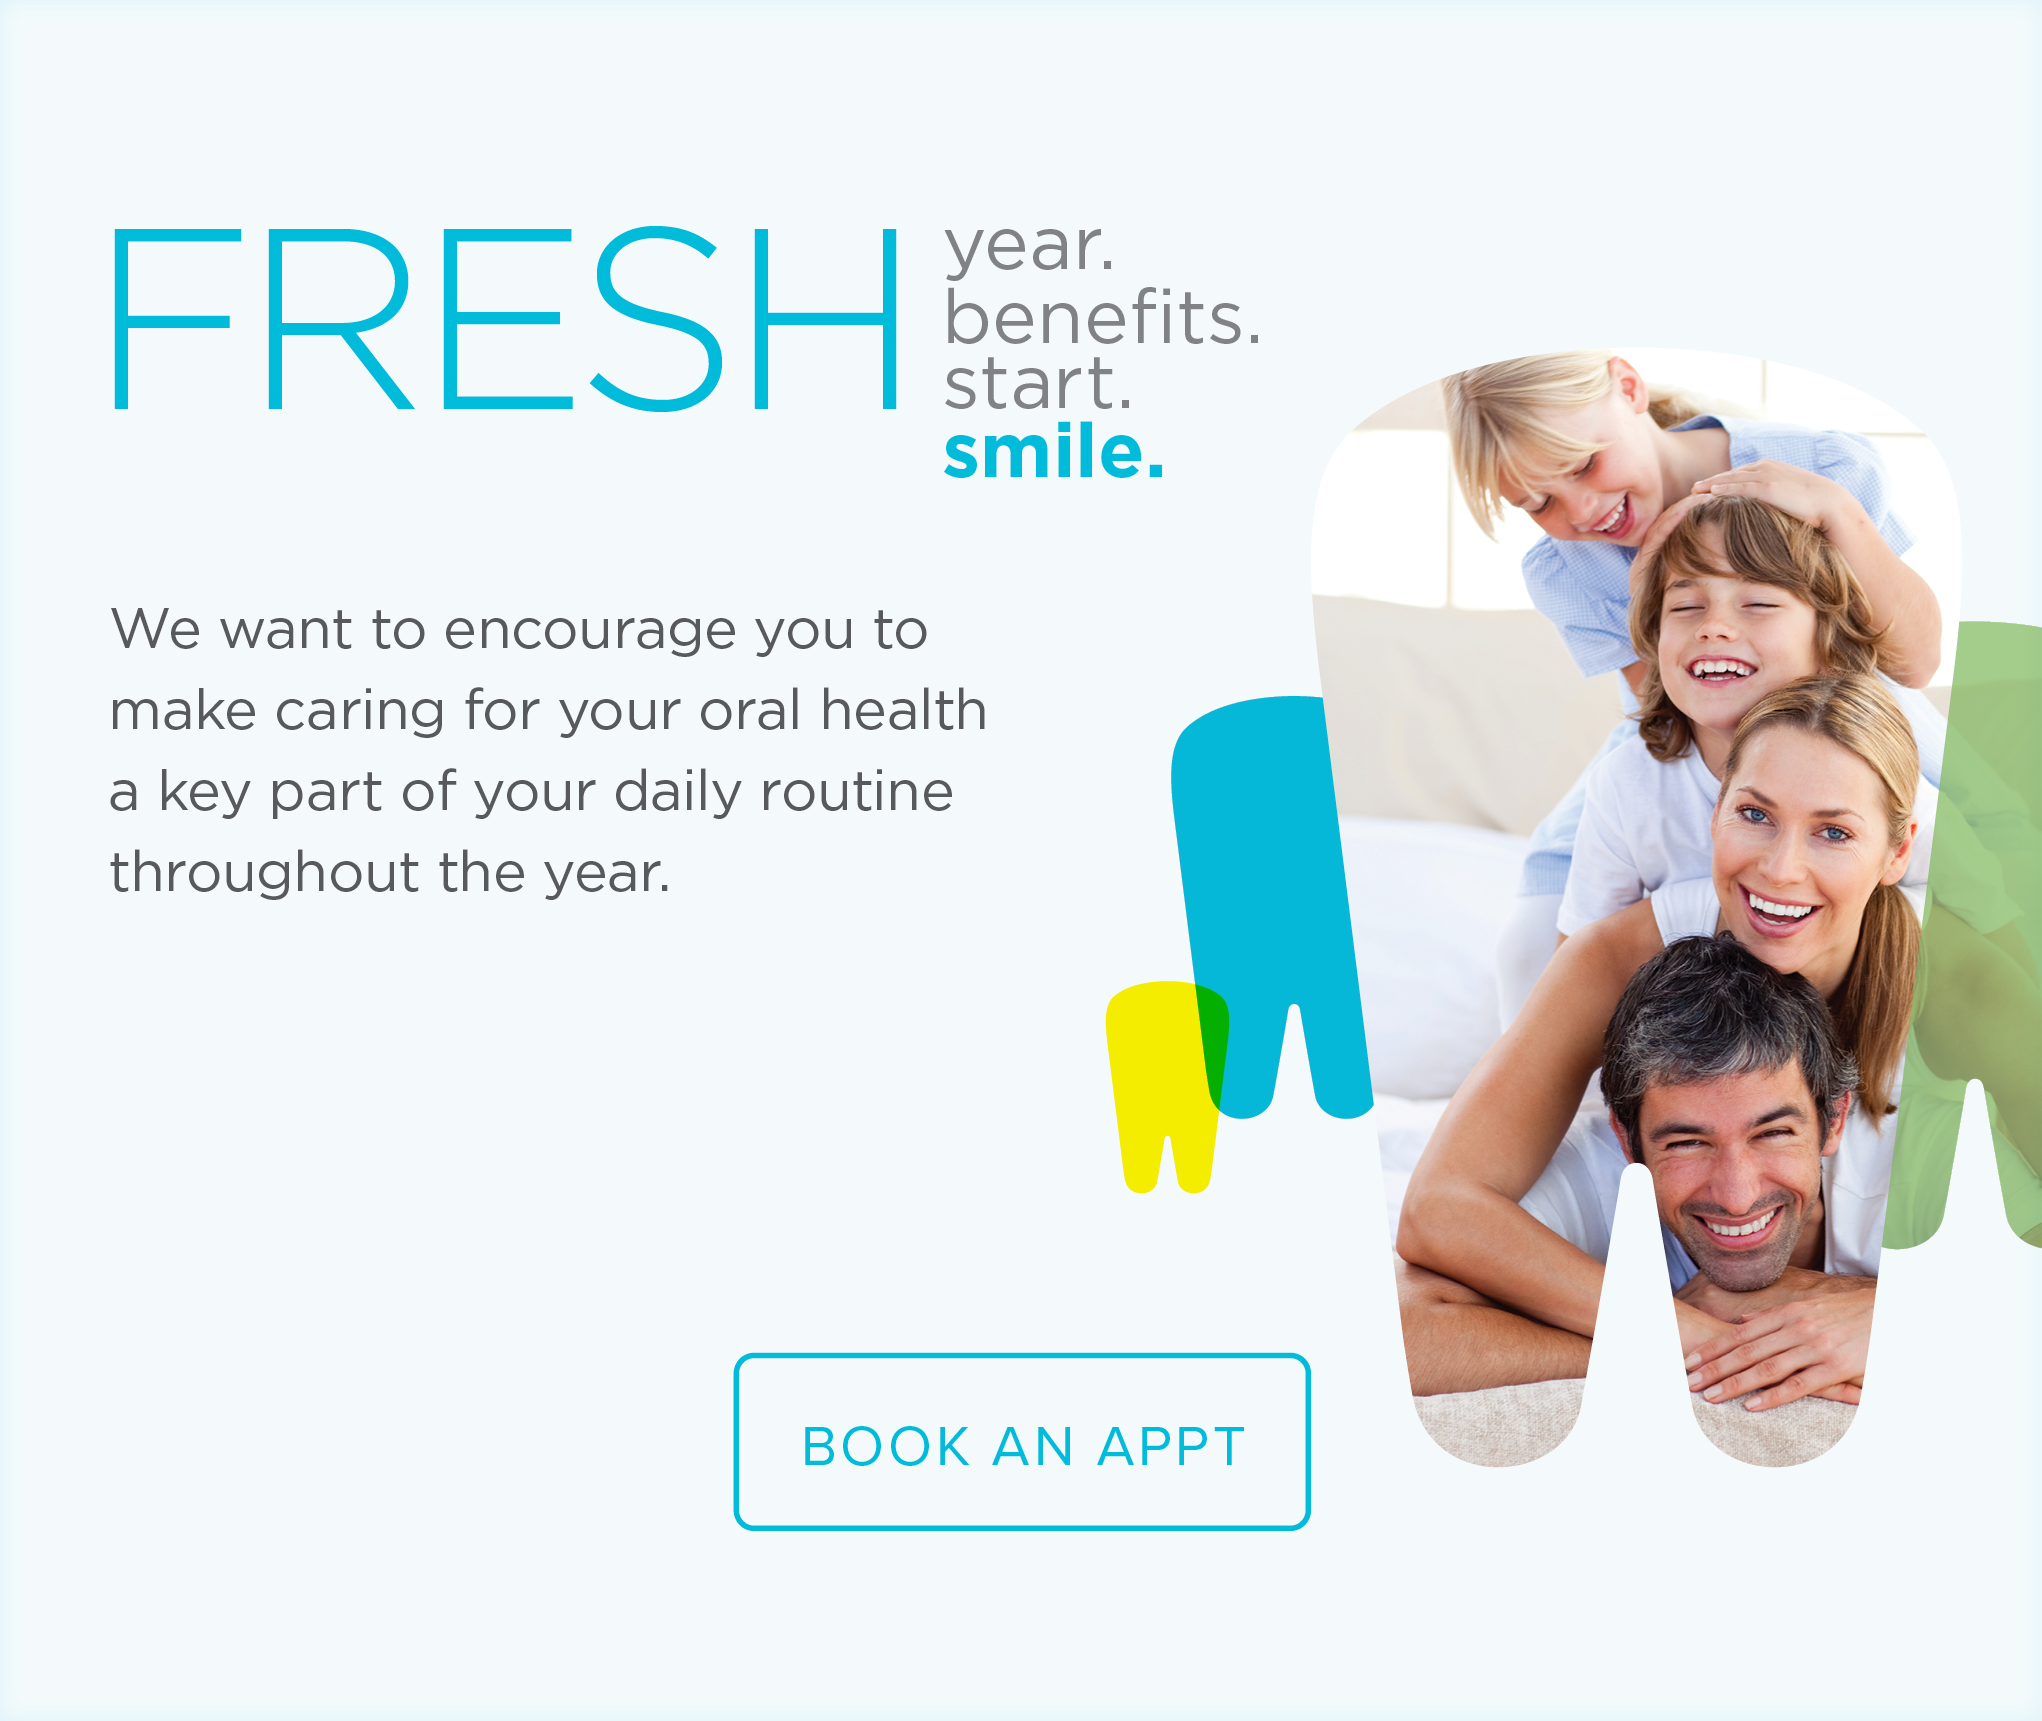 Mesquite Dental Group and Orthodontics - Make the Most of Your Benefits